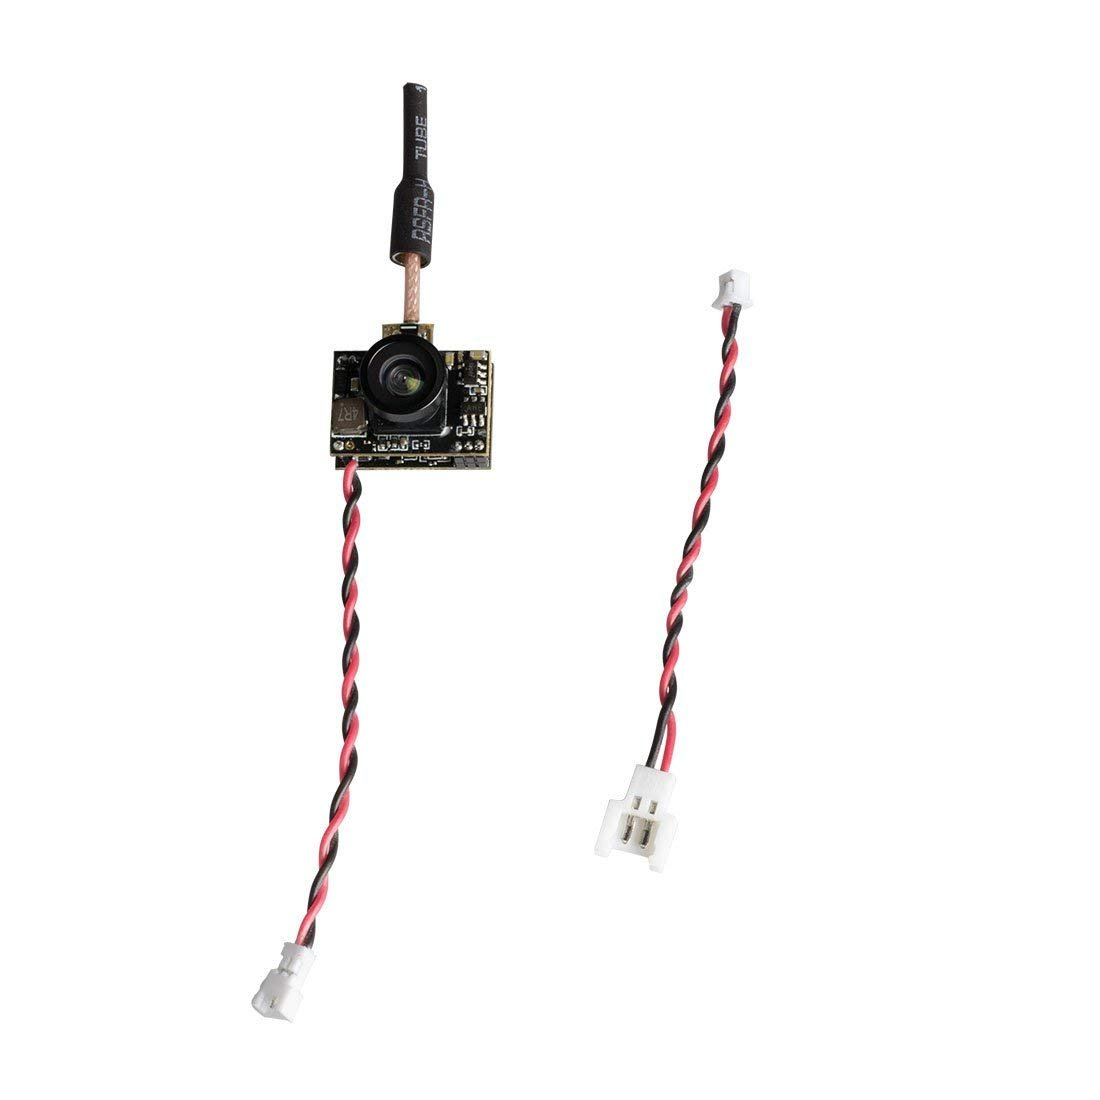 Wolfwhoop Combo3 Micro AIO Camera Integrated OSD and 5.8GHz 0.1mW/25mW/200mW VTX and Dipole Antenna for FPV Quadcopter Drone